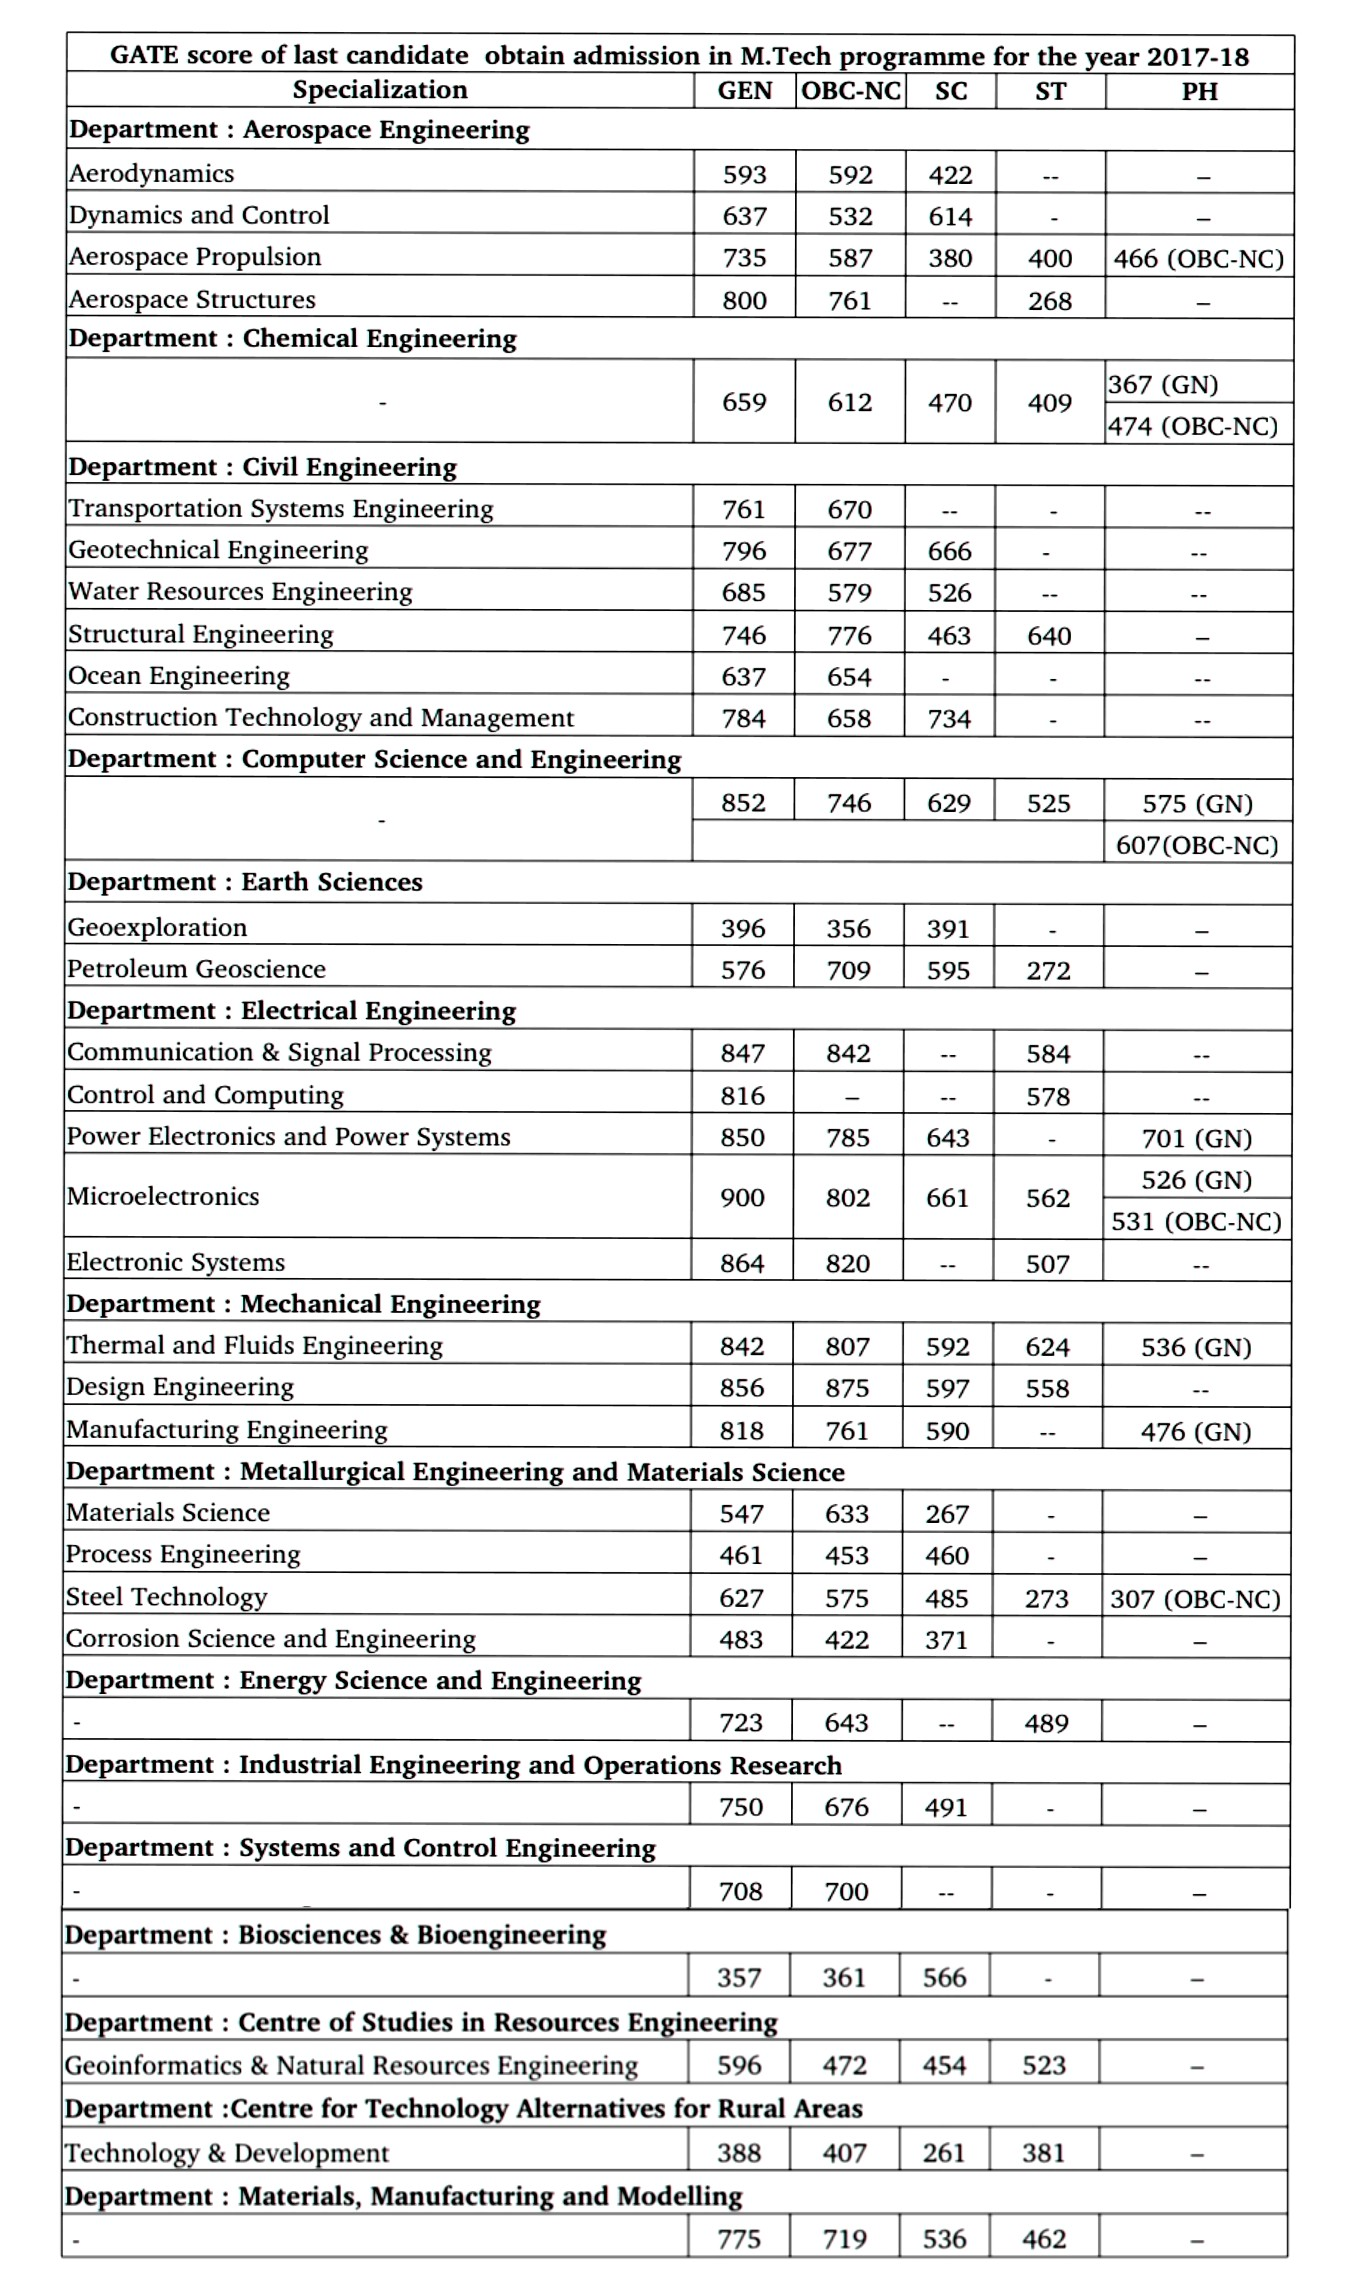 GATE score of last candidate obtain admission in M.Tech programme for the year 2017­-18